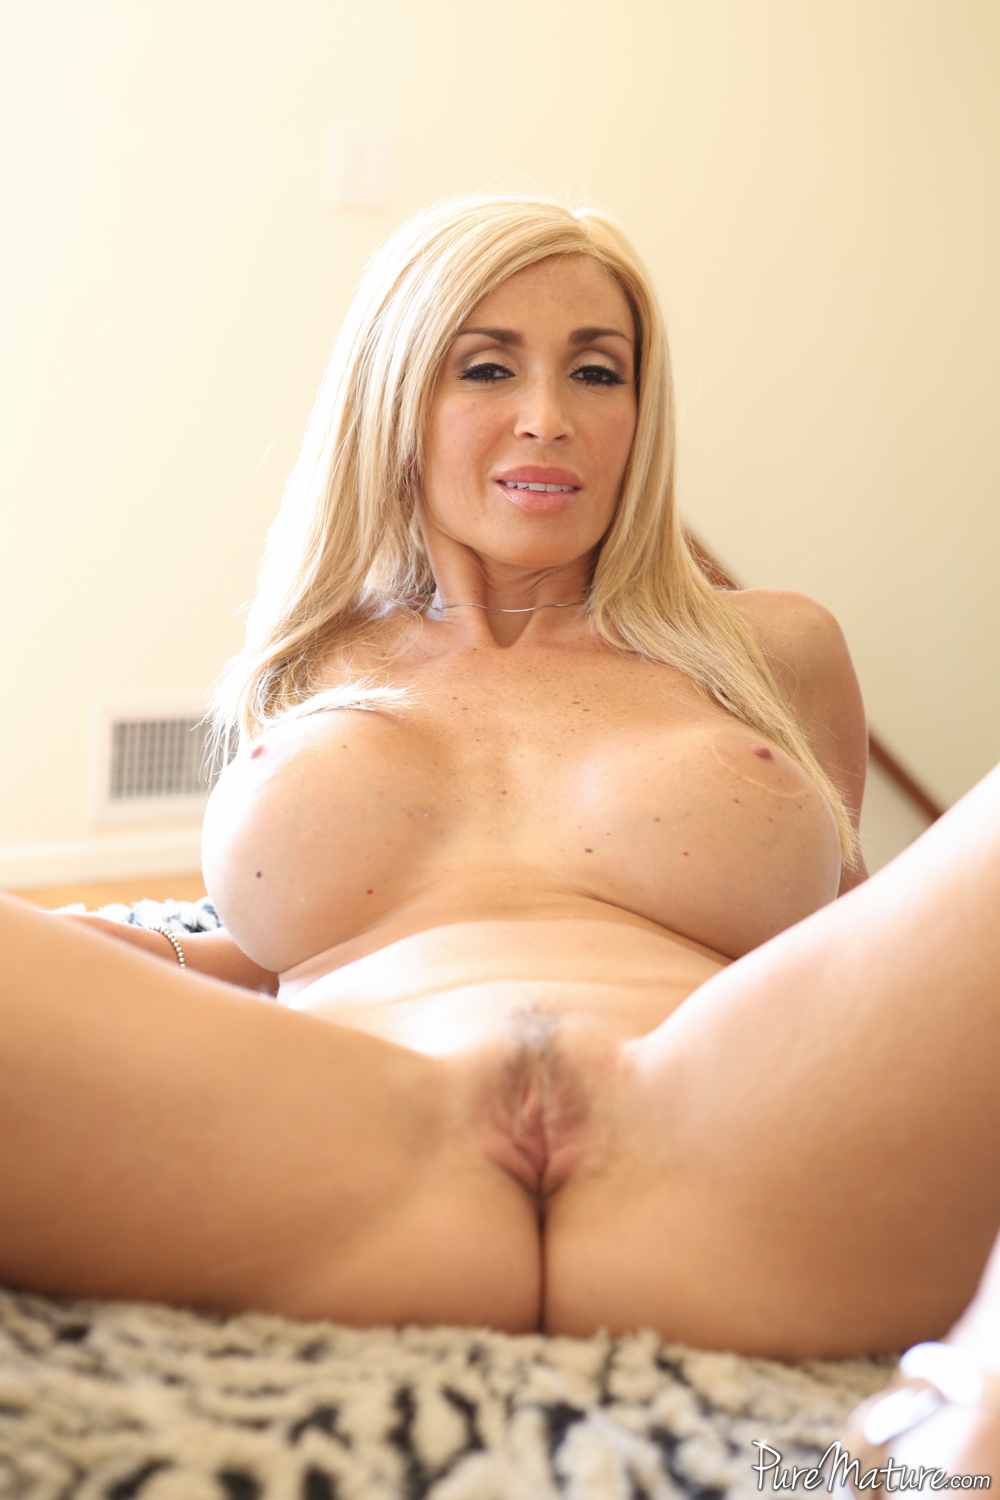 pure mature presents evita pozzi in a scene called sex tape